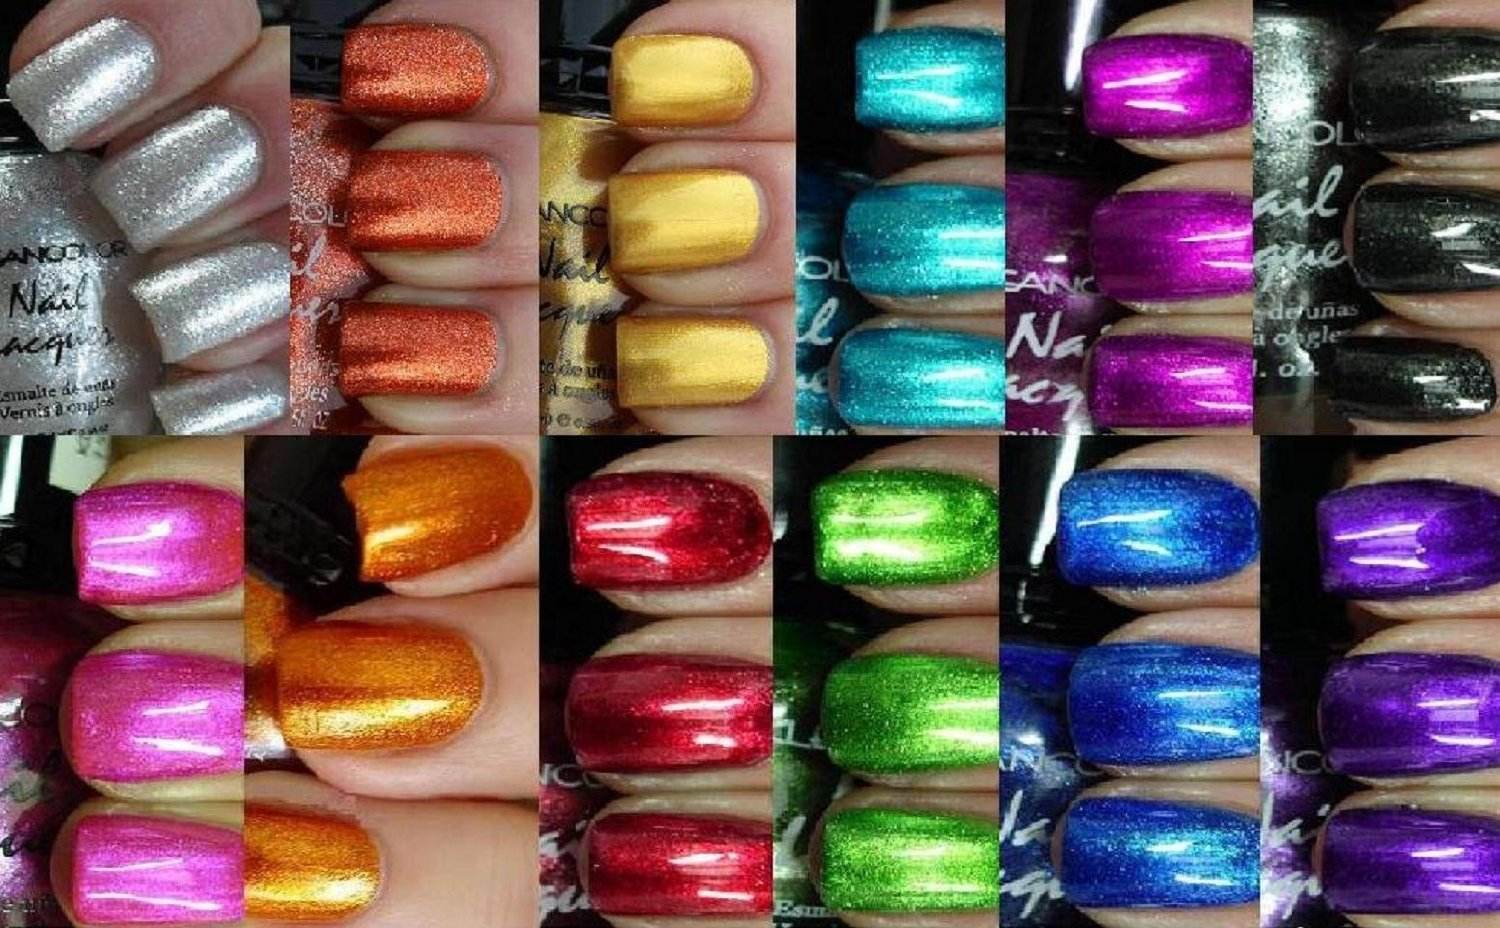 Delighted Games Nail Art Huge Justice Nail Polish Clean Nail Fungus Pictures Toenails Nail Polish In Eye What To Do Old Nail Polish That Stays On For 3 Weeks BrownSally Hansen Gel Nail Polish Colors Amazon.com : Kleancolor Nail Polish   Awesome Metallic Full Size ..